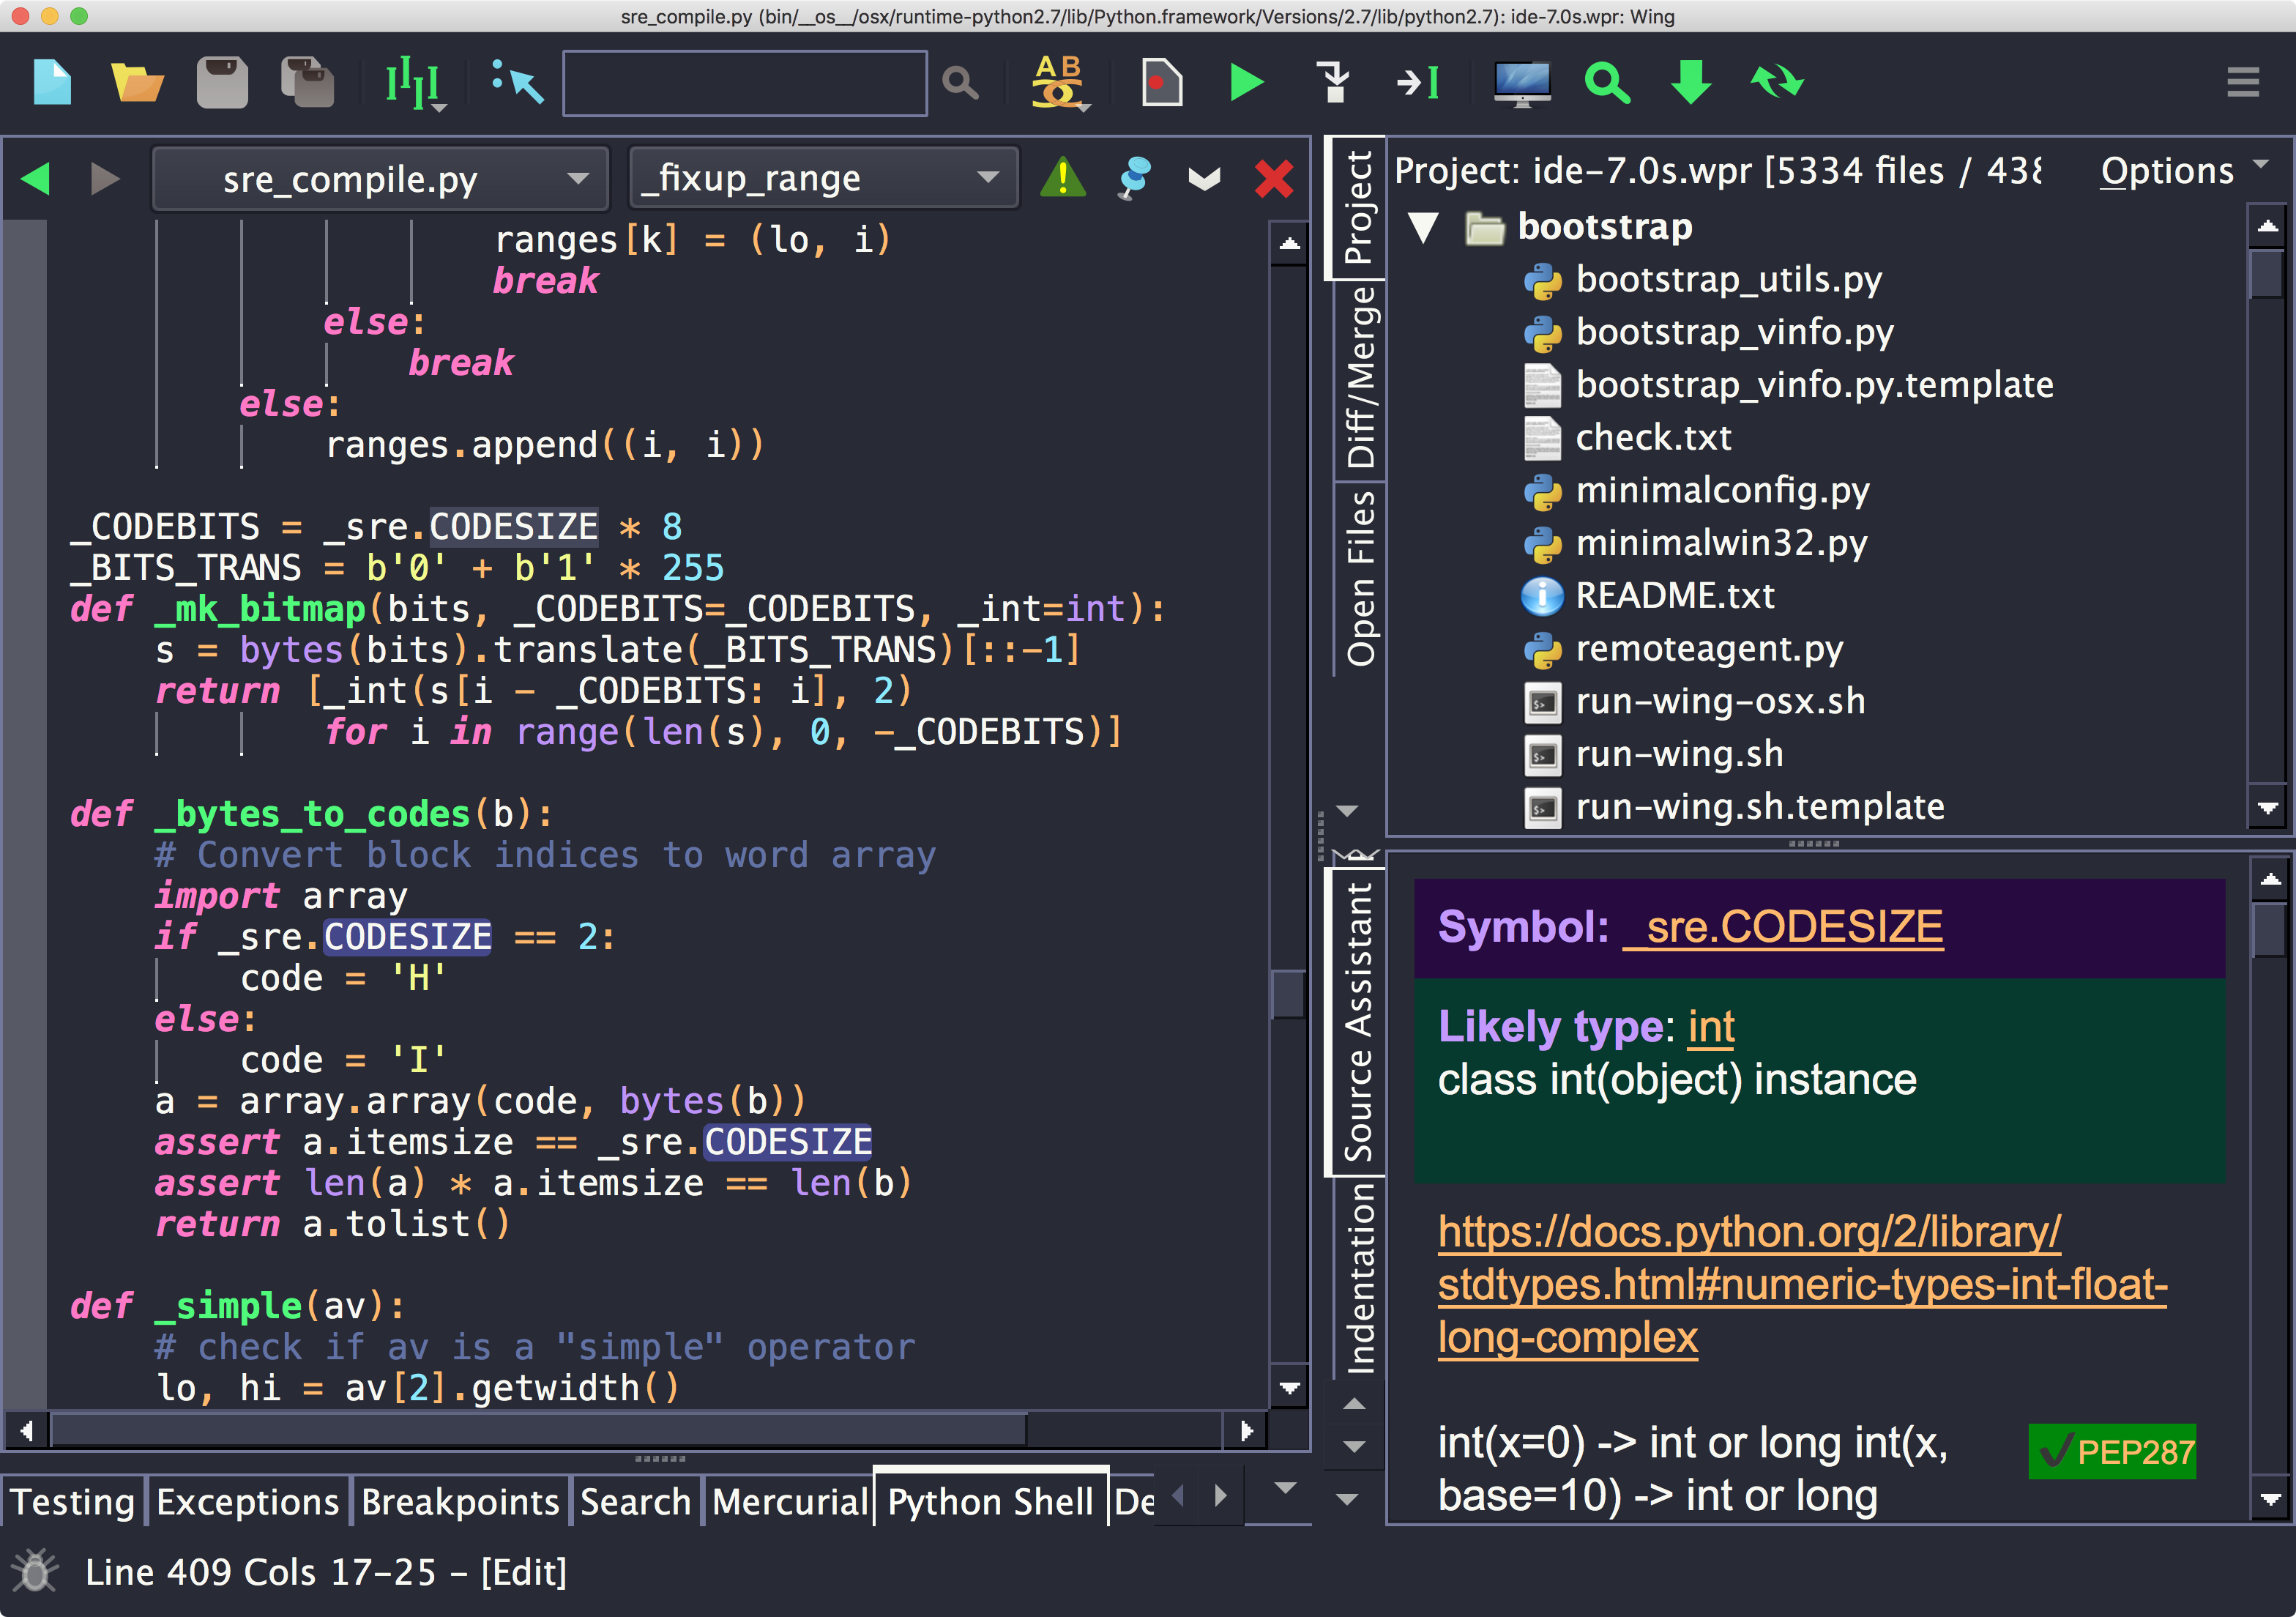 Wing Python IDE 7 0 0 6 Early Access - Wing Python IDE